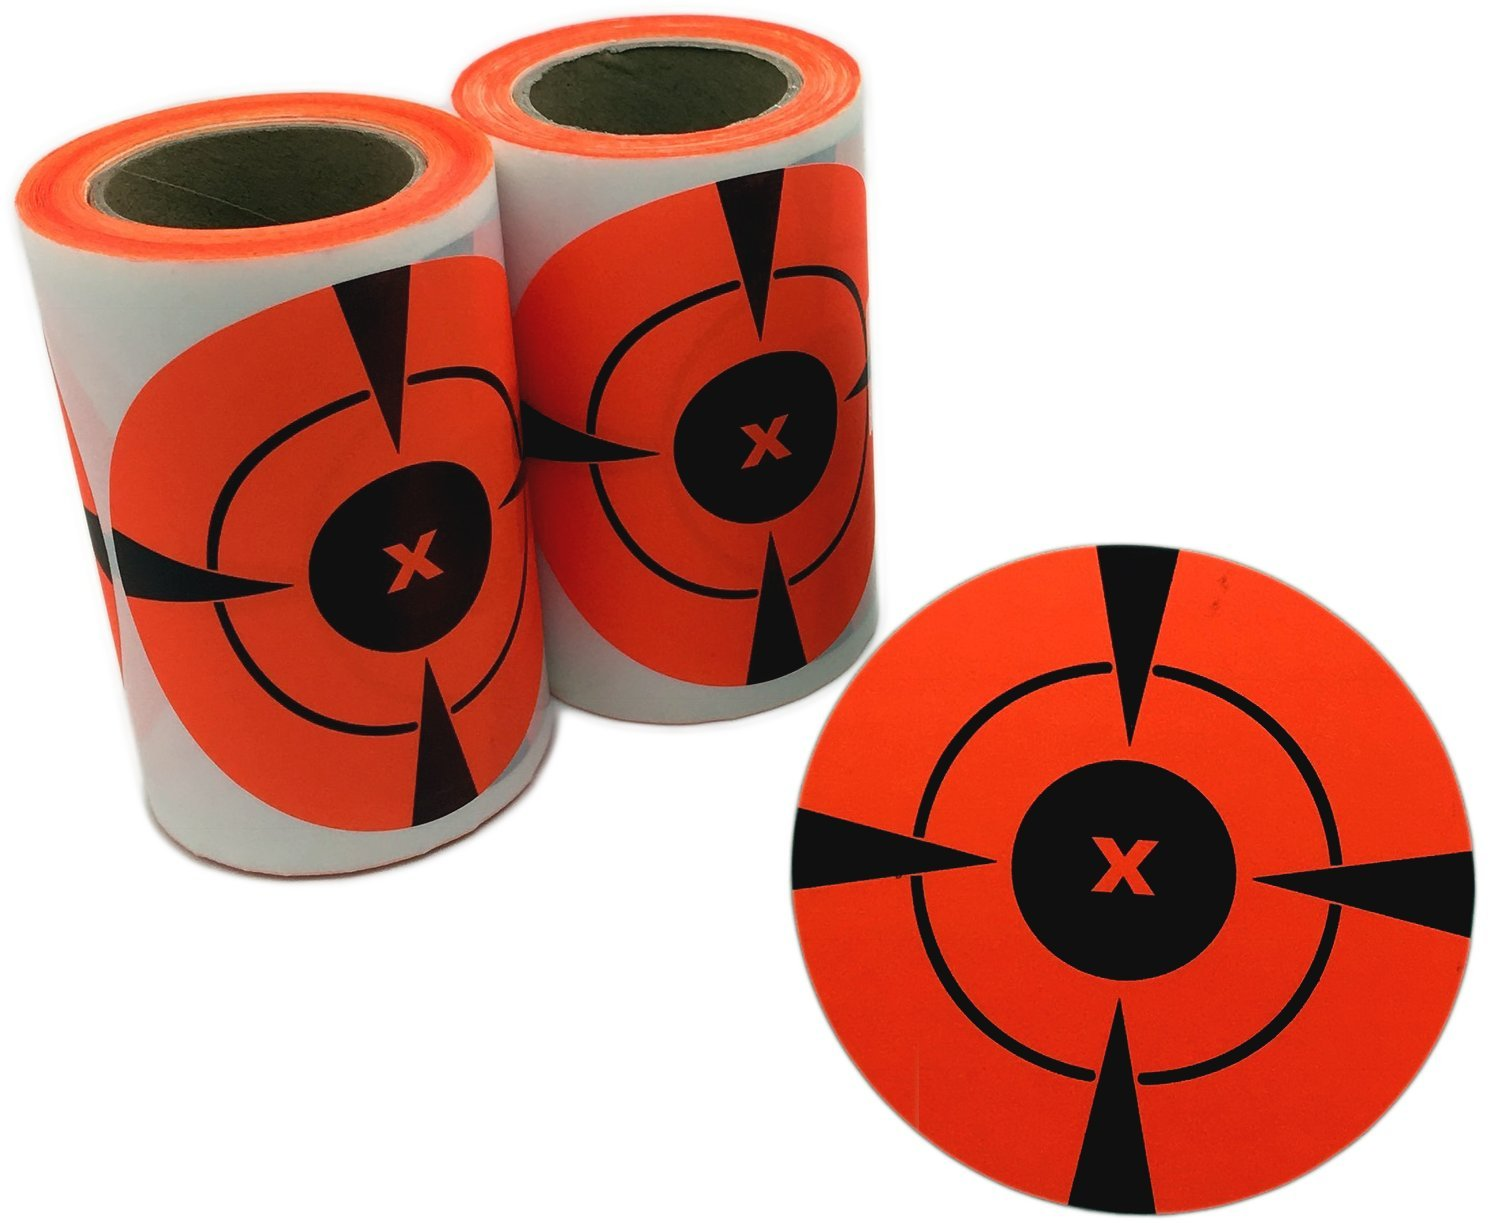 Okallo Products Neon Orange 3'' Shooting Sticker Targets - 200 Pack (2 Rolls of 100)